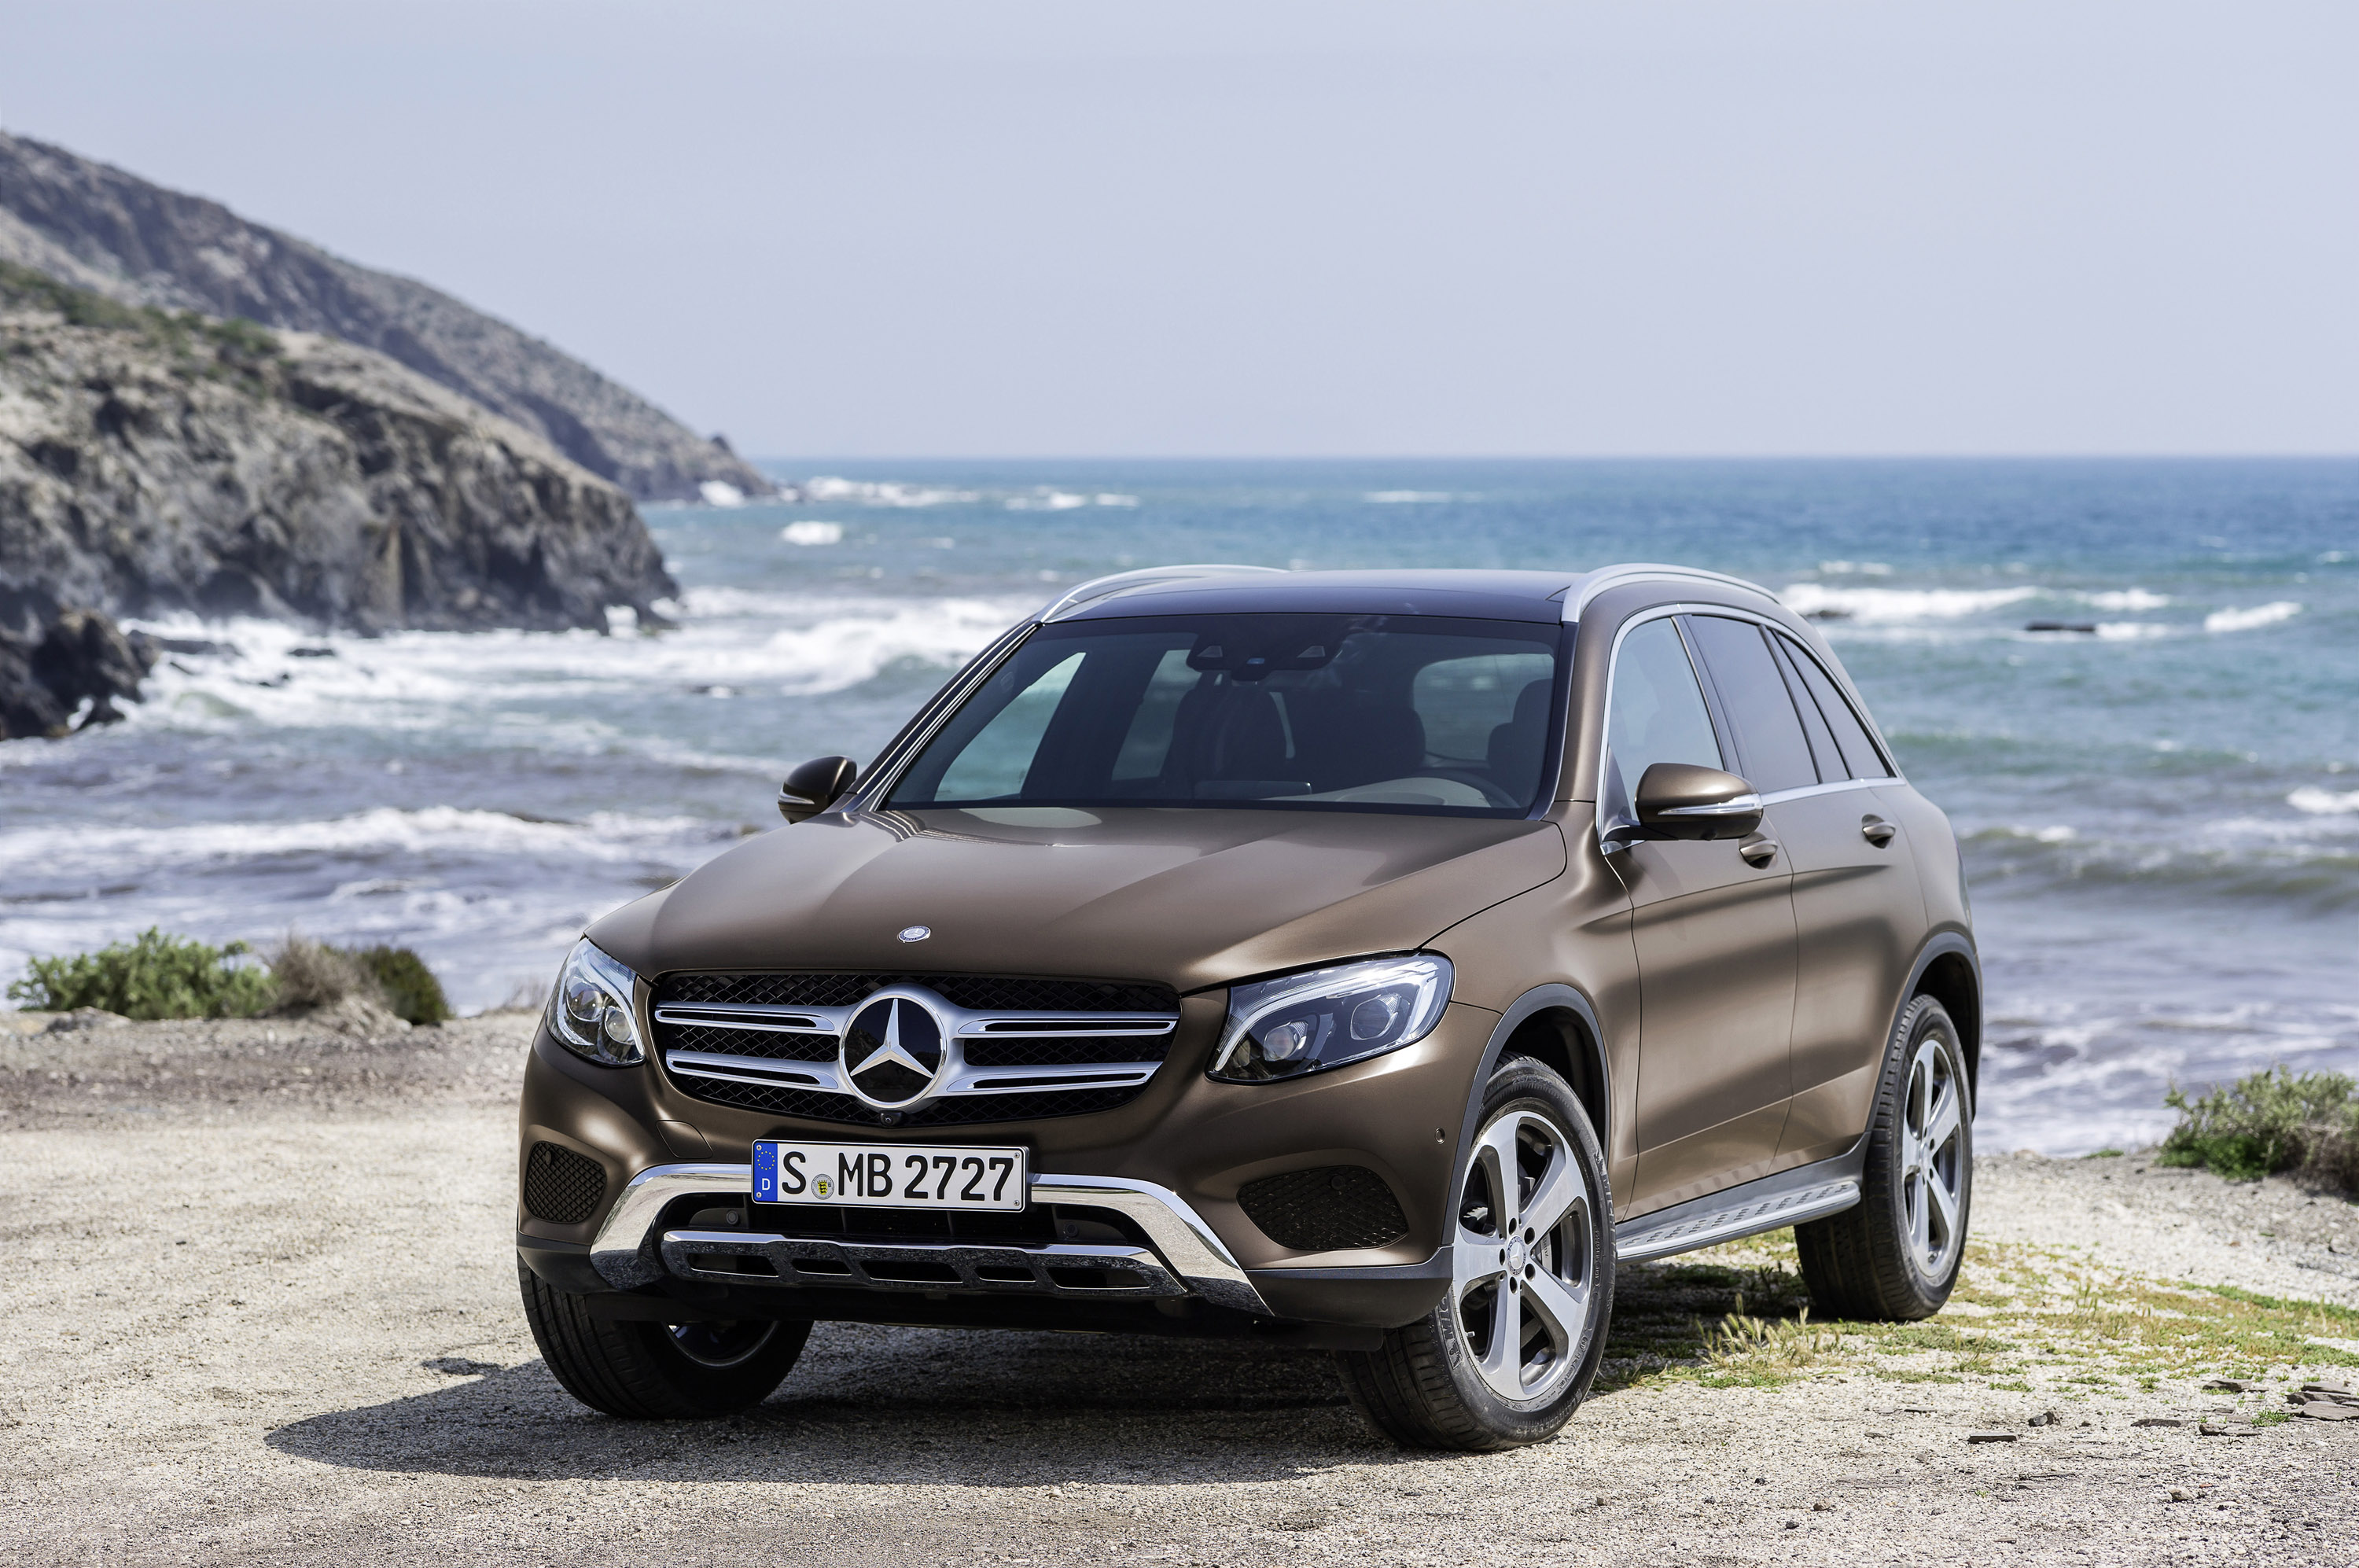 https://www.carsinvasion.com/gallery/2016-mercedes-benz-glc/2016-Mercedes-Benz-GLC-01.jpg